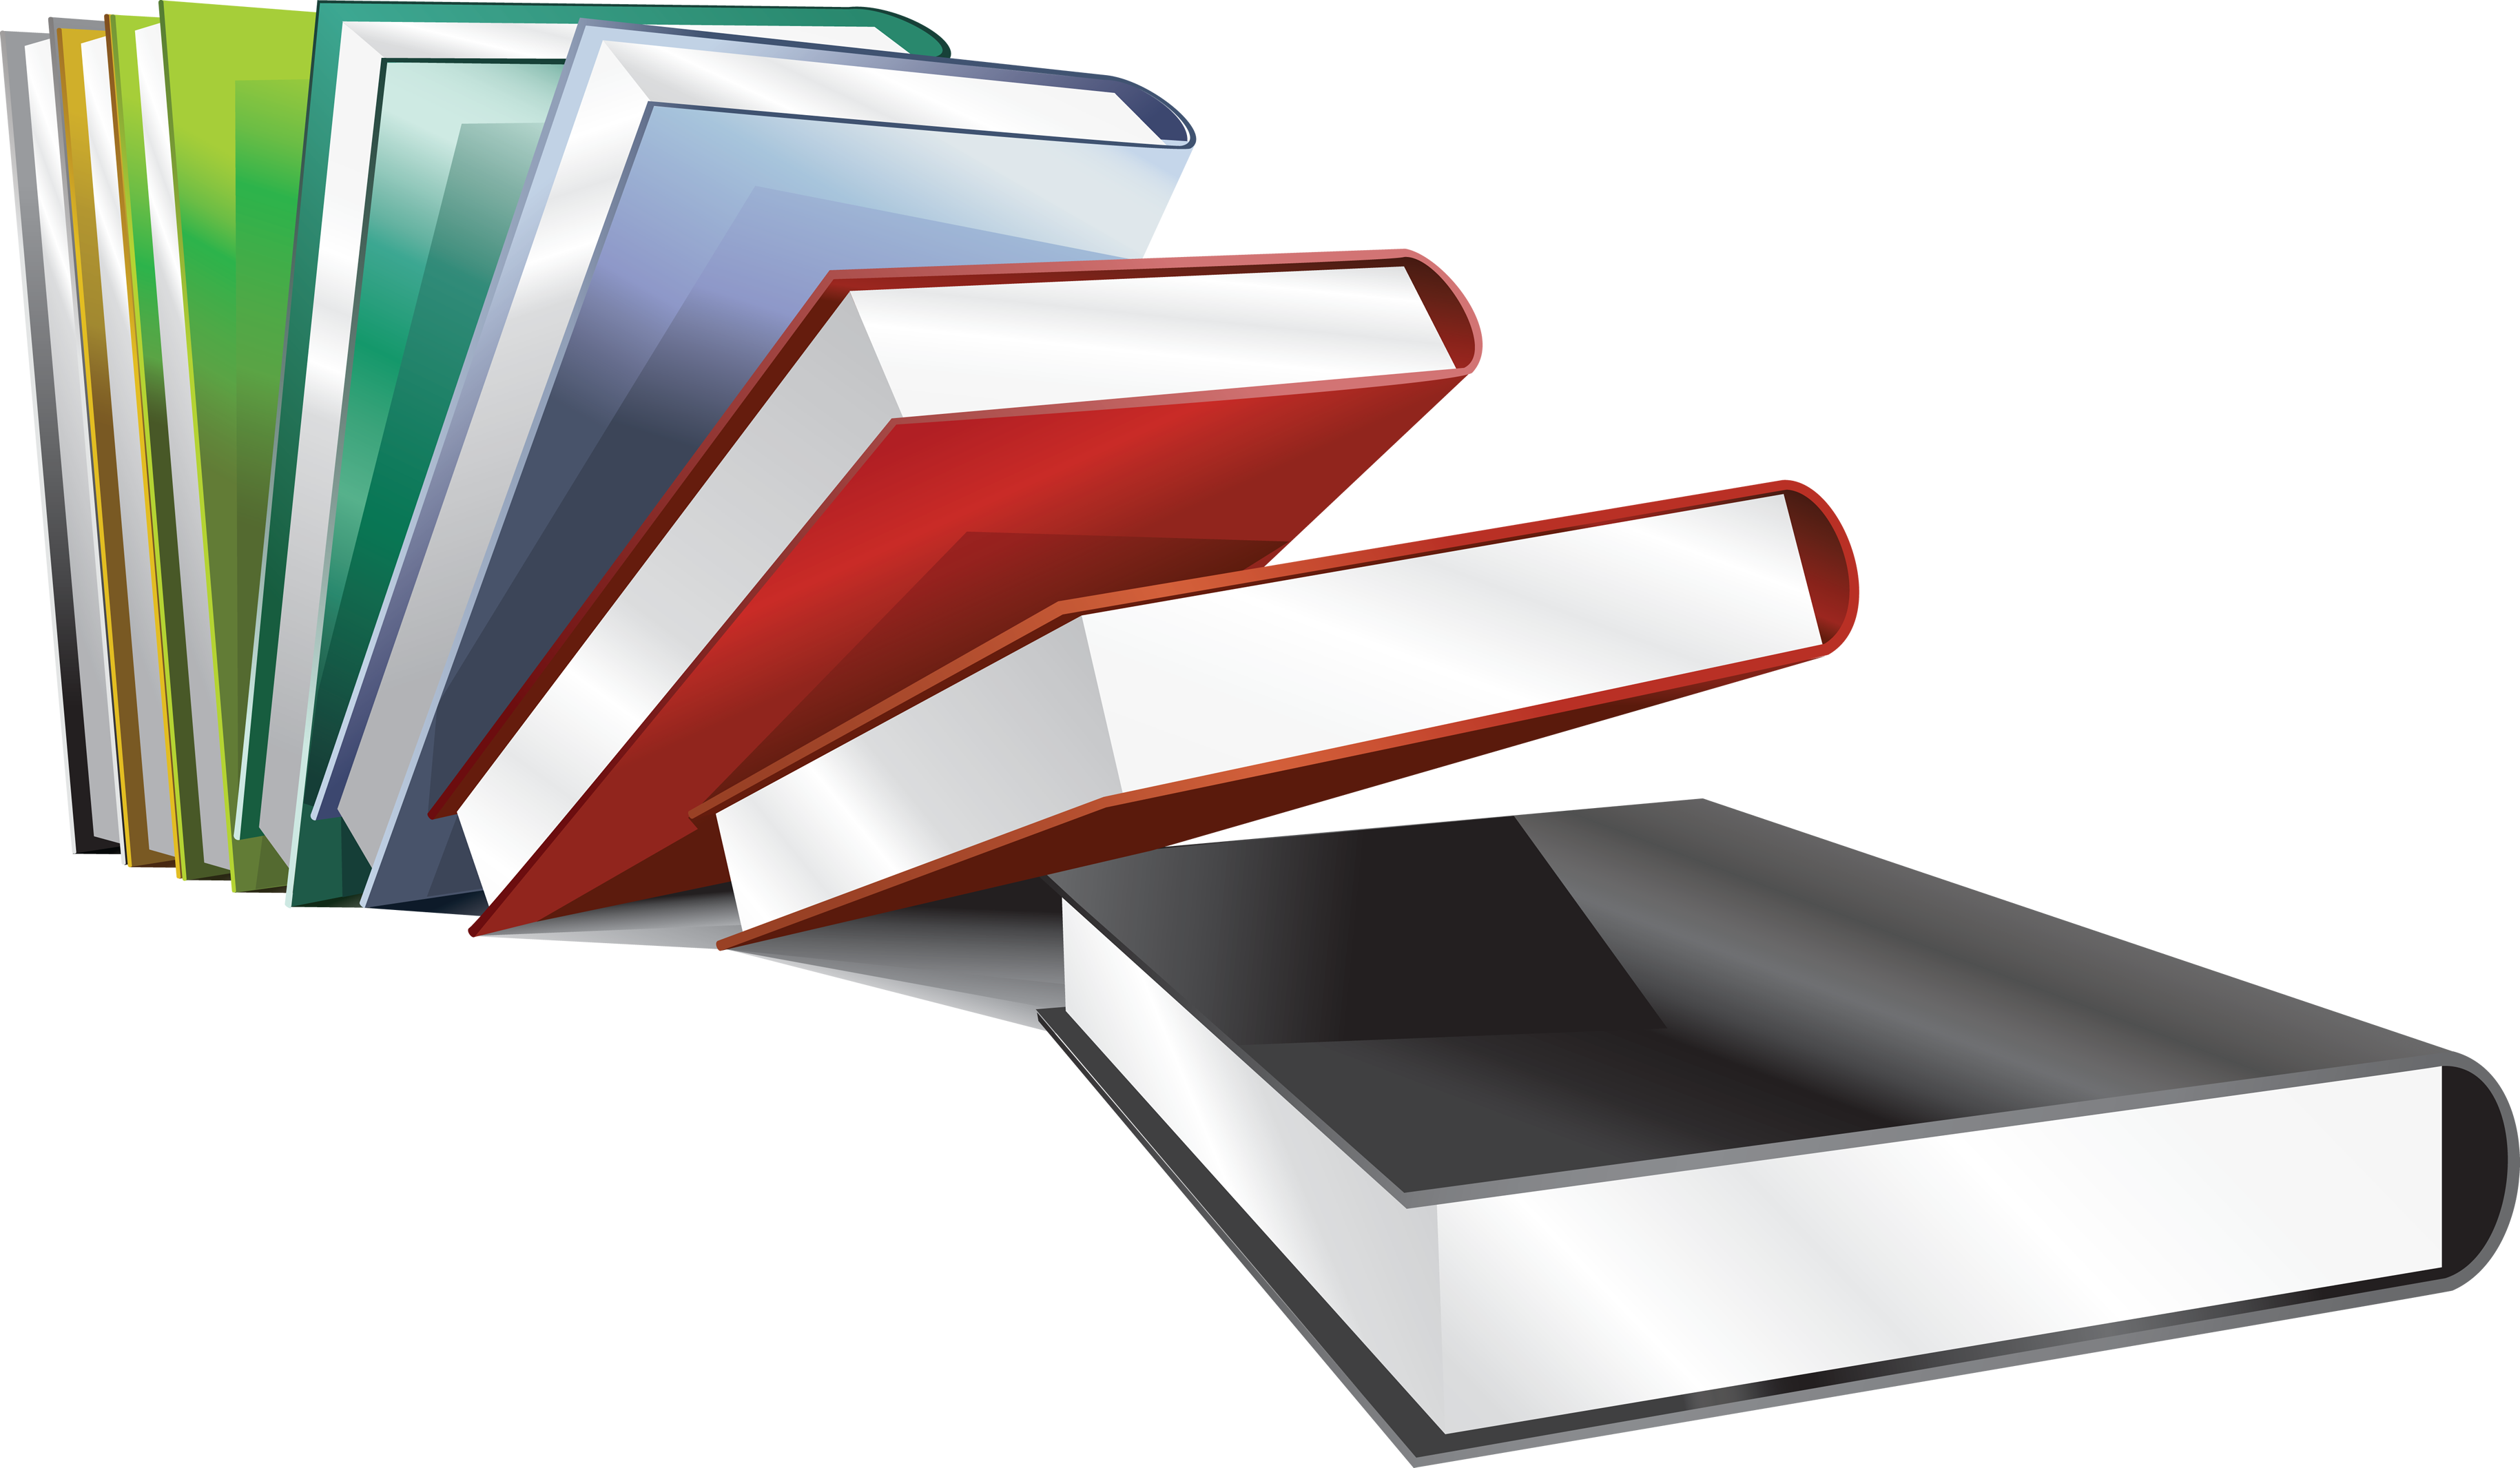 Books png. Image with transparency background